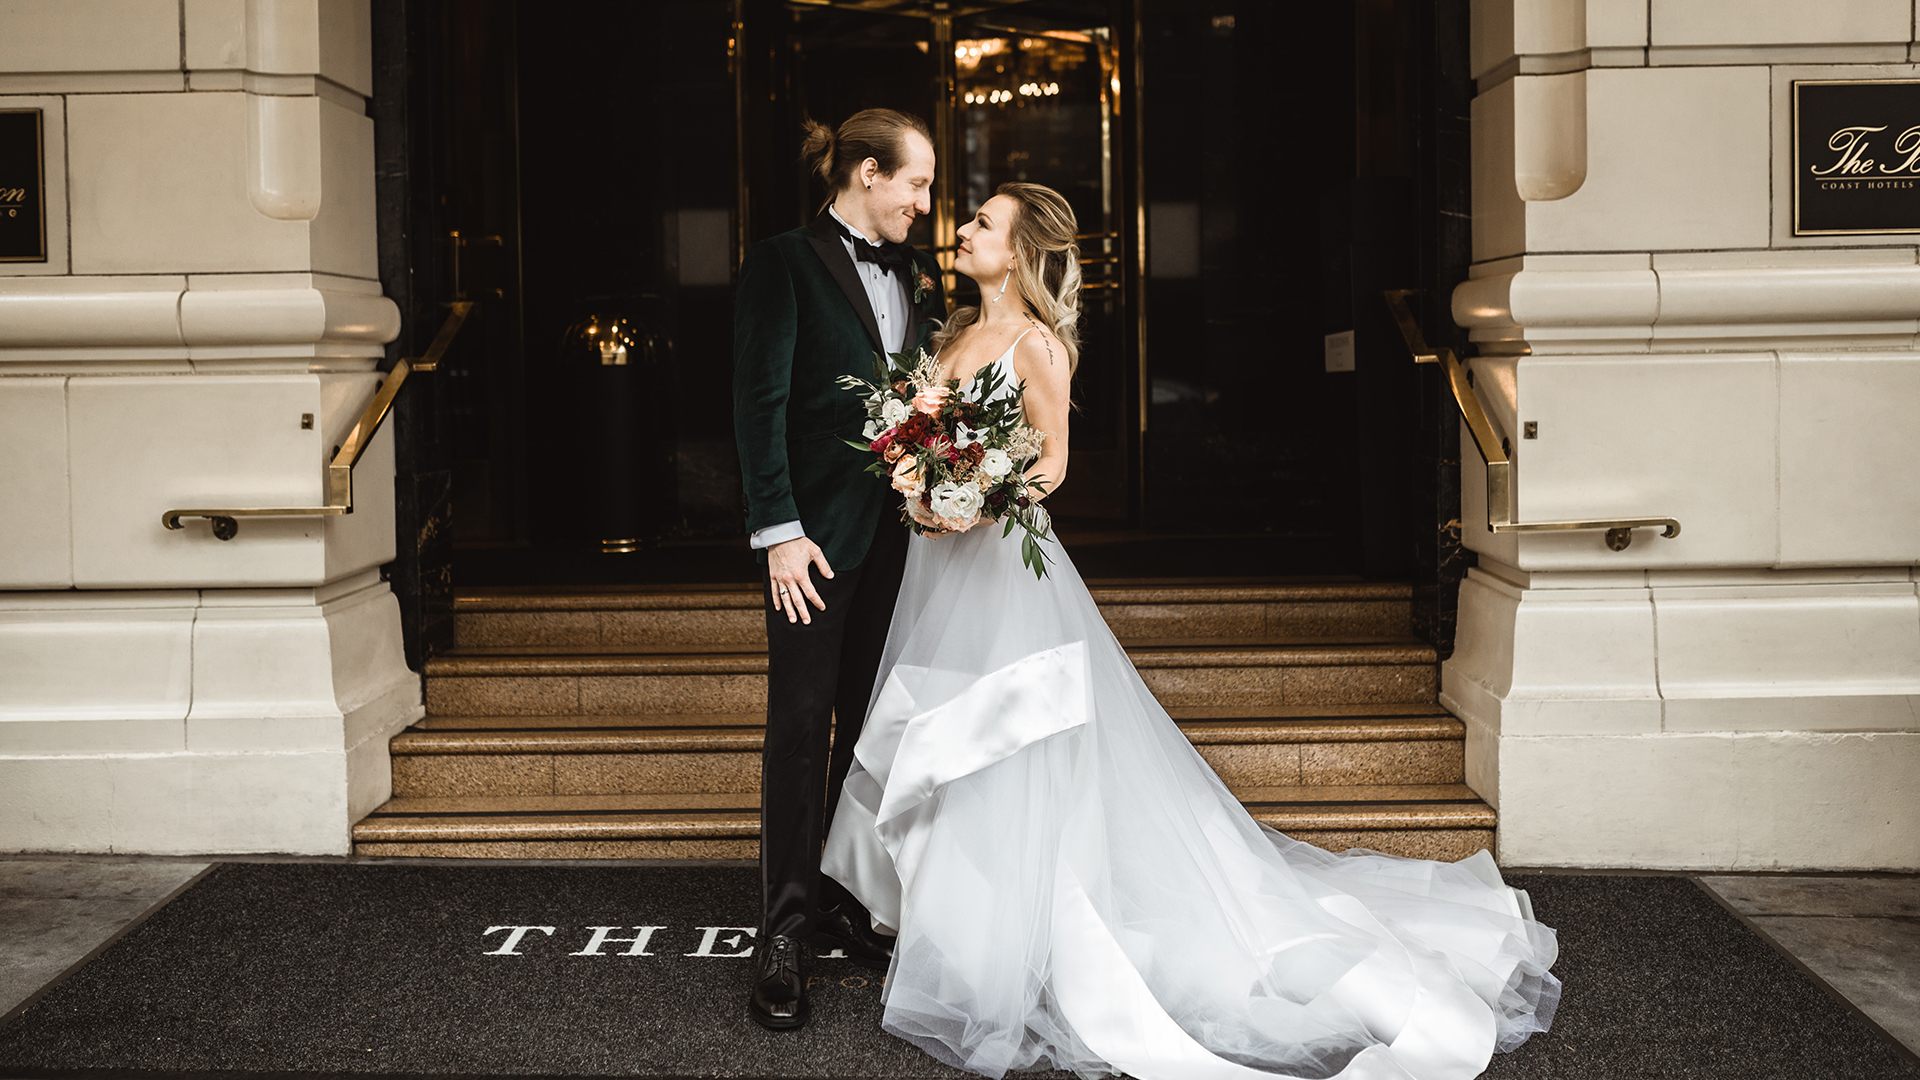 Melinda + Jake | Portland, Oregon | The Benson Hotel